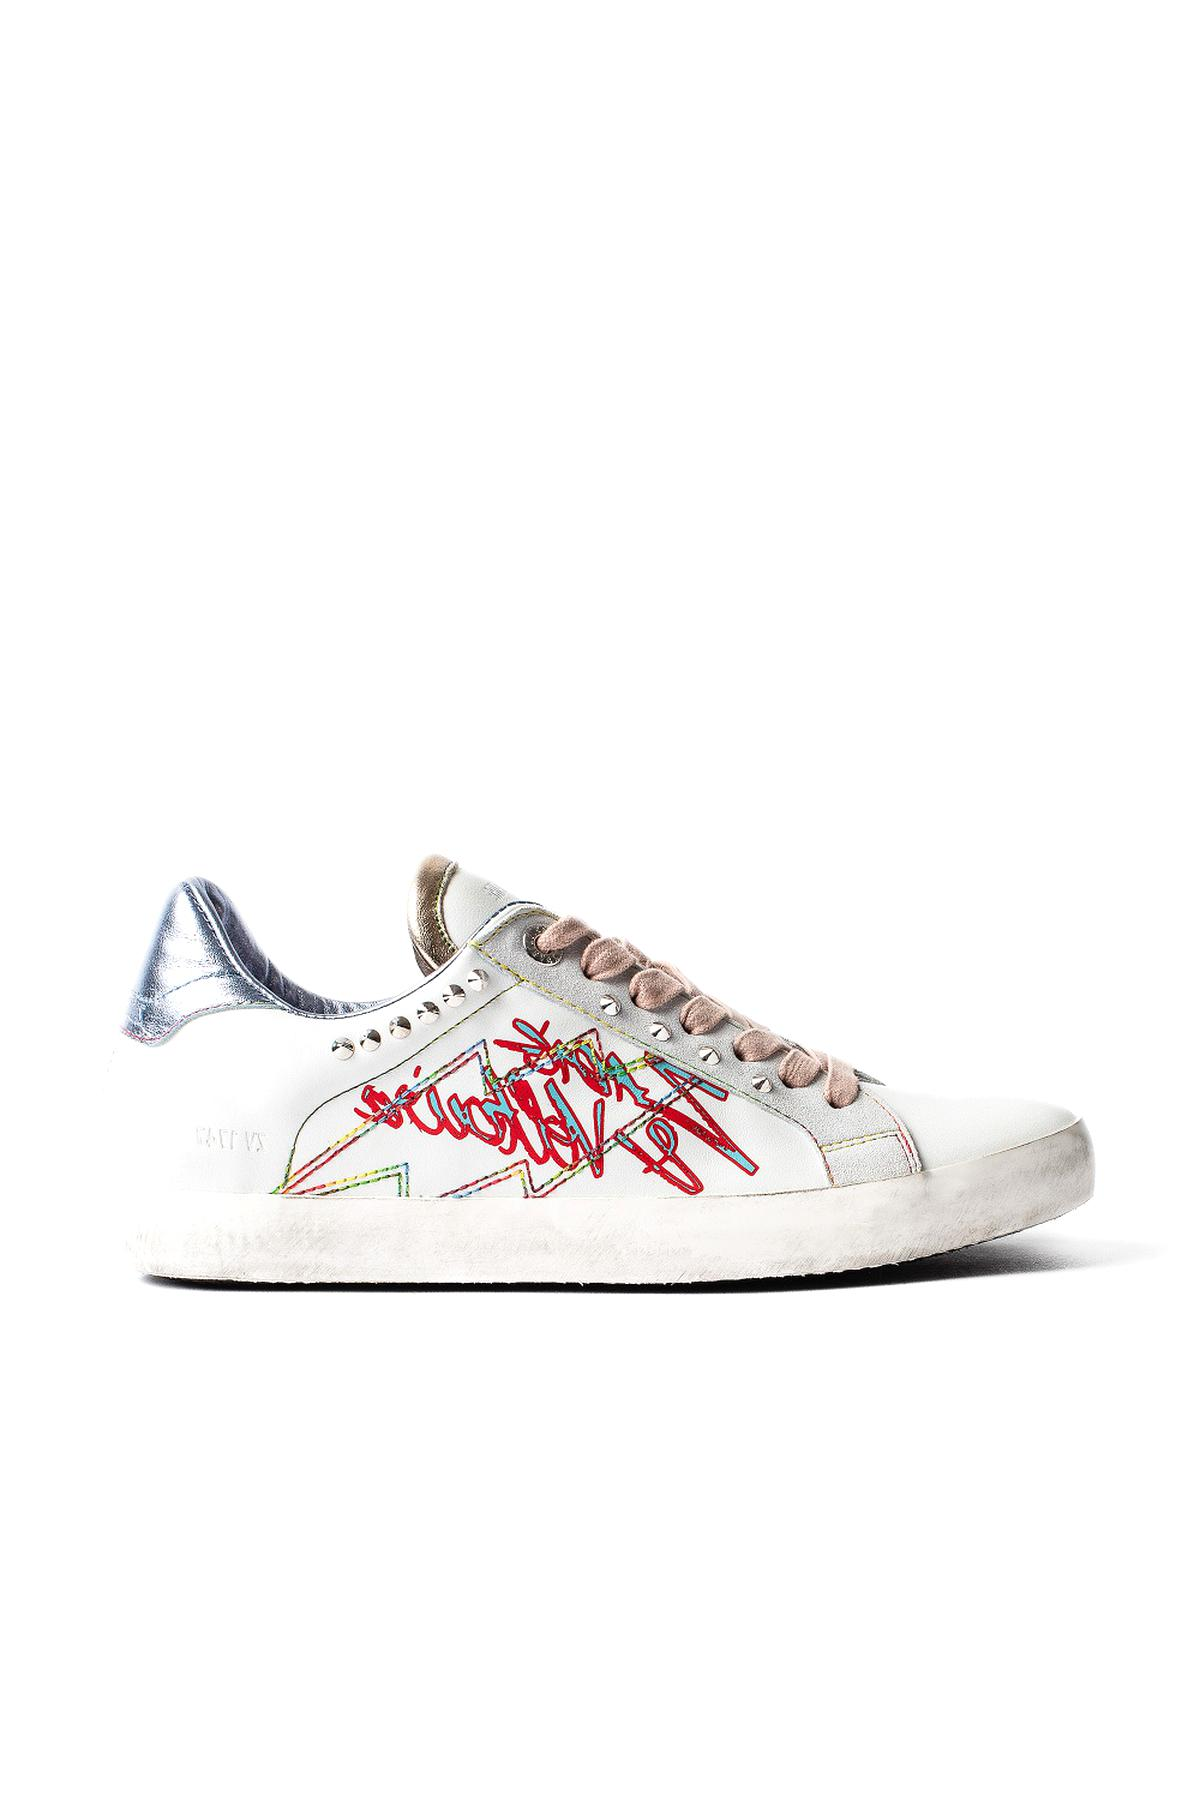 Chaussures Zadig Voltaire d'occasion